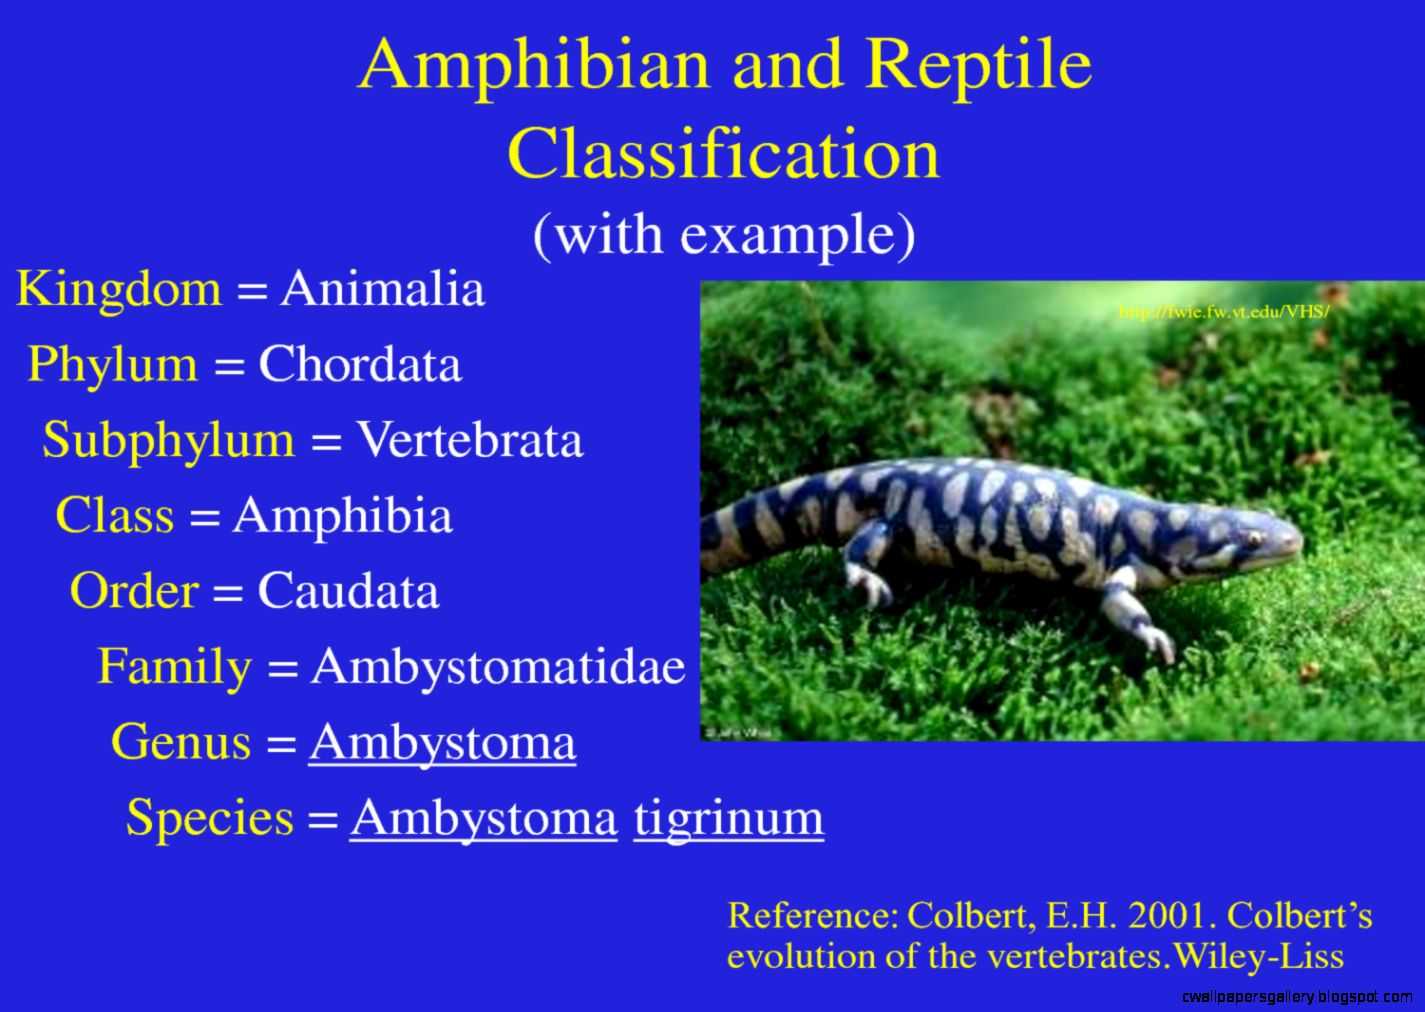 Currently Undescribed California Reptiles and Amphibians